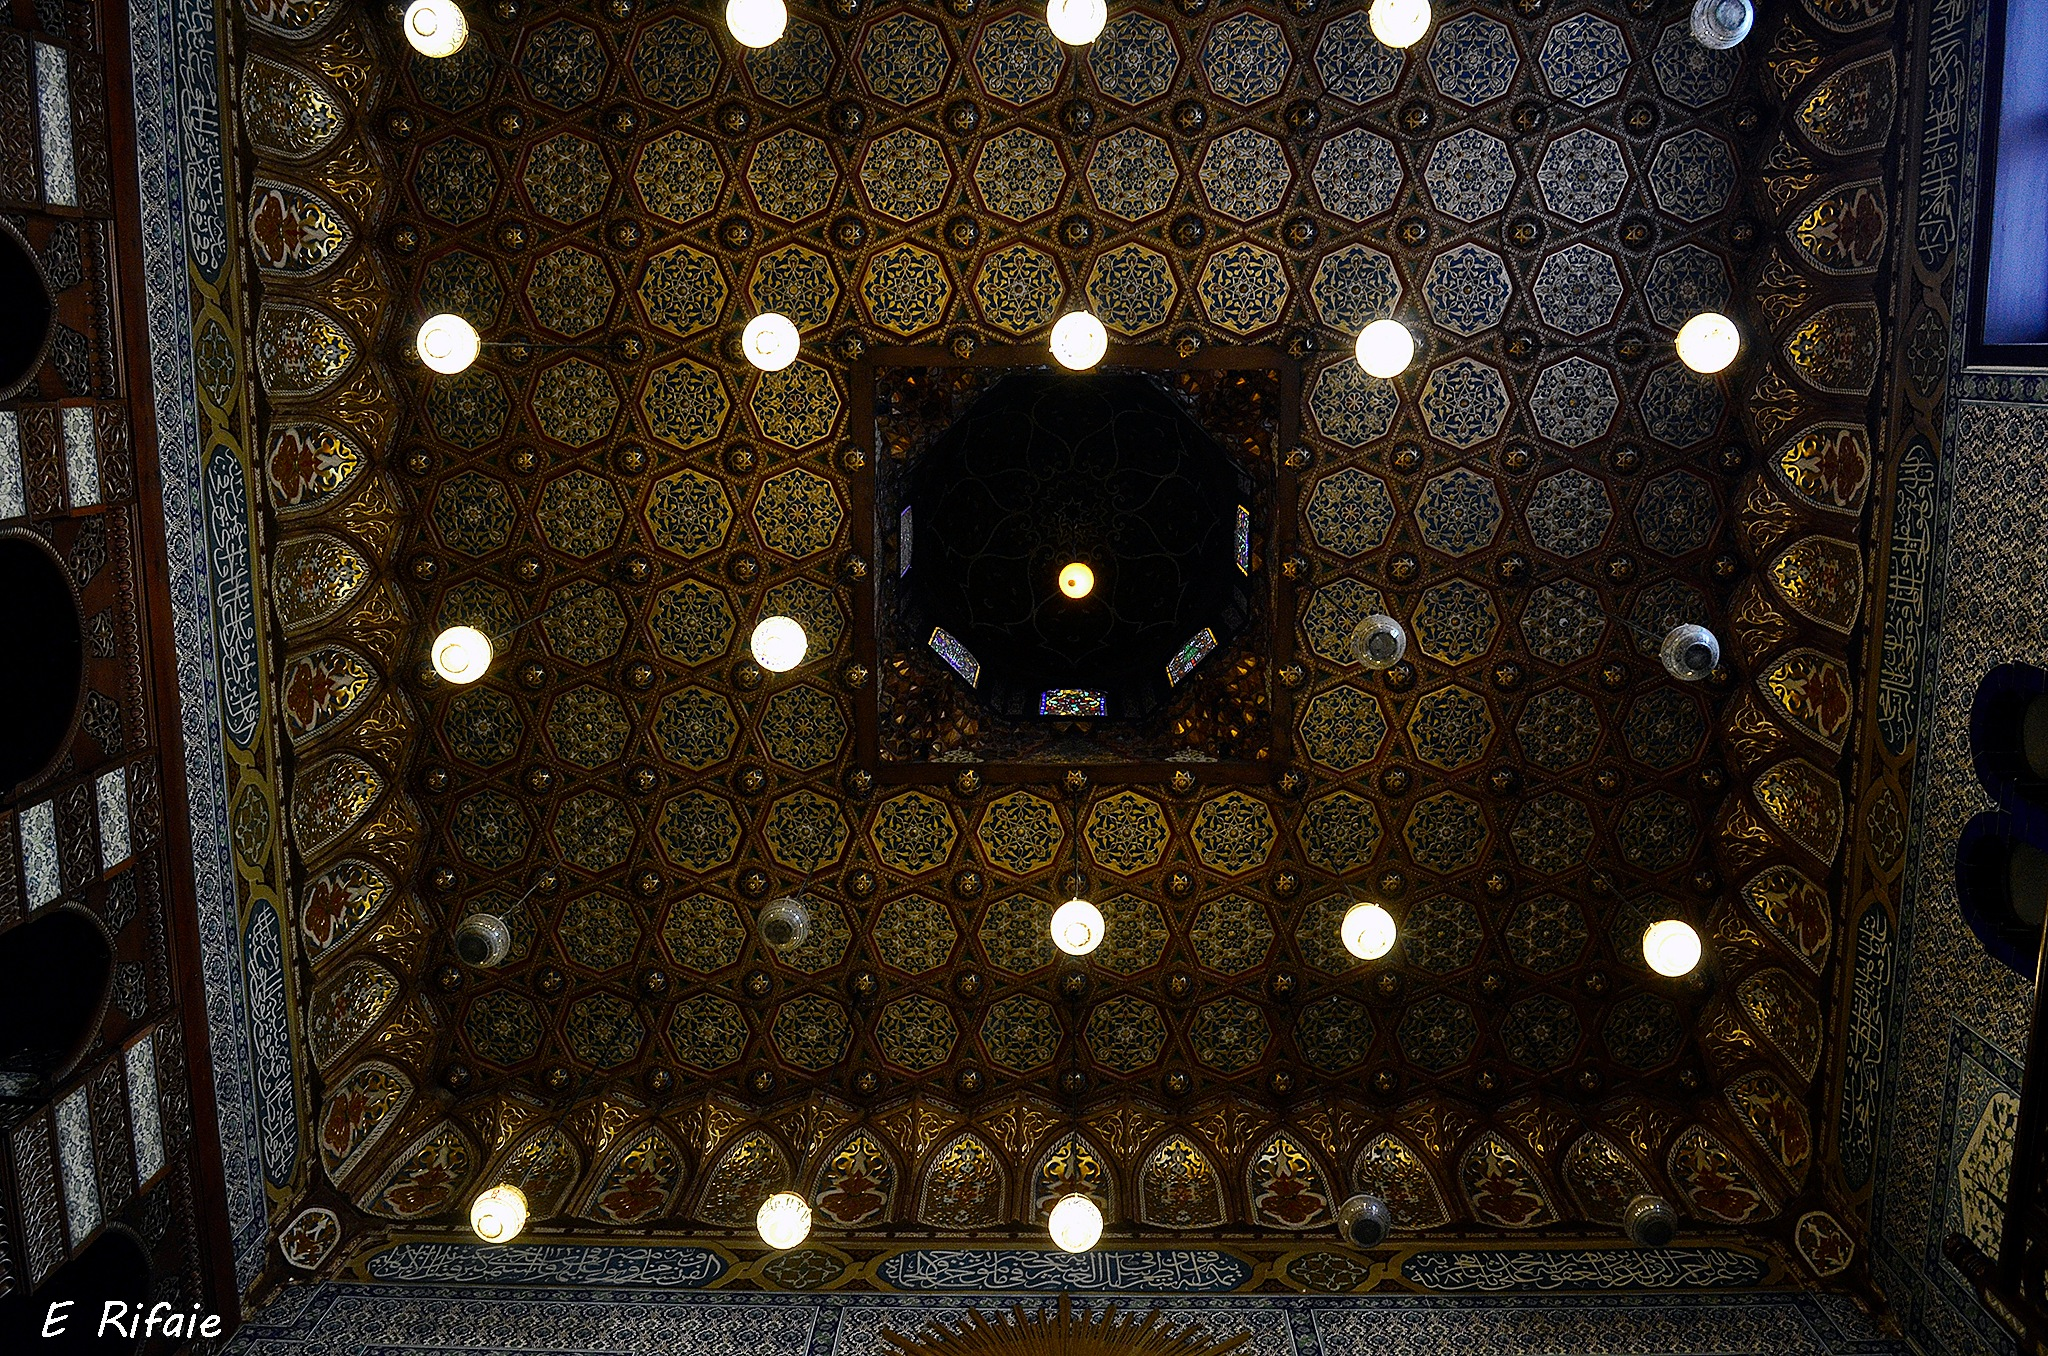 Ceiling of Mohamed Ali palace by Emad Eldin Moustafa El Refaie